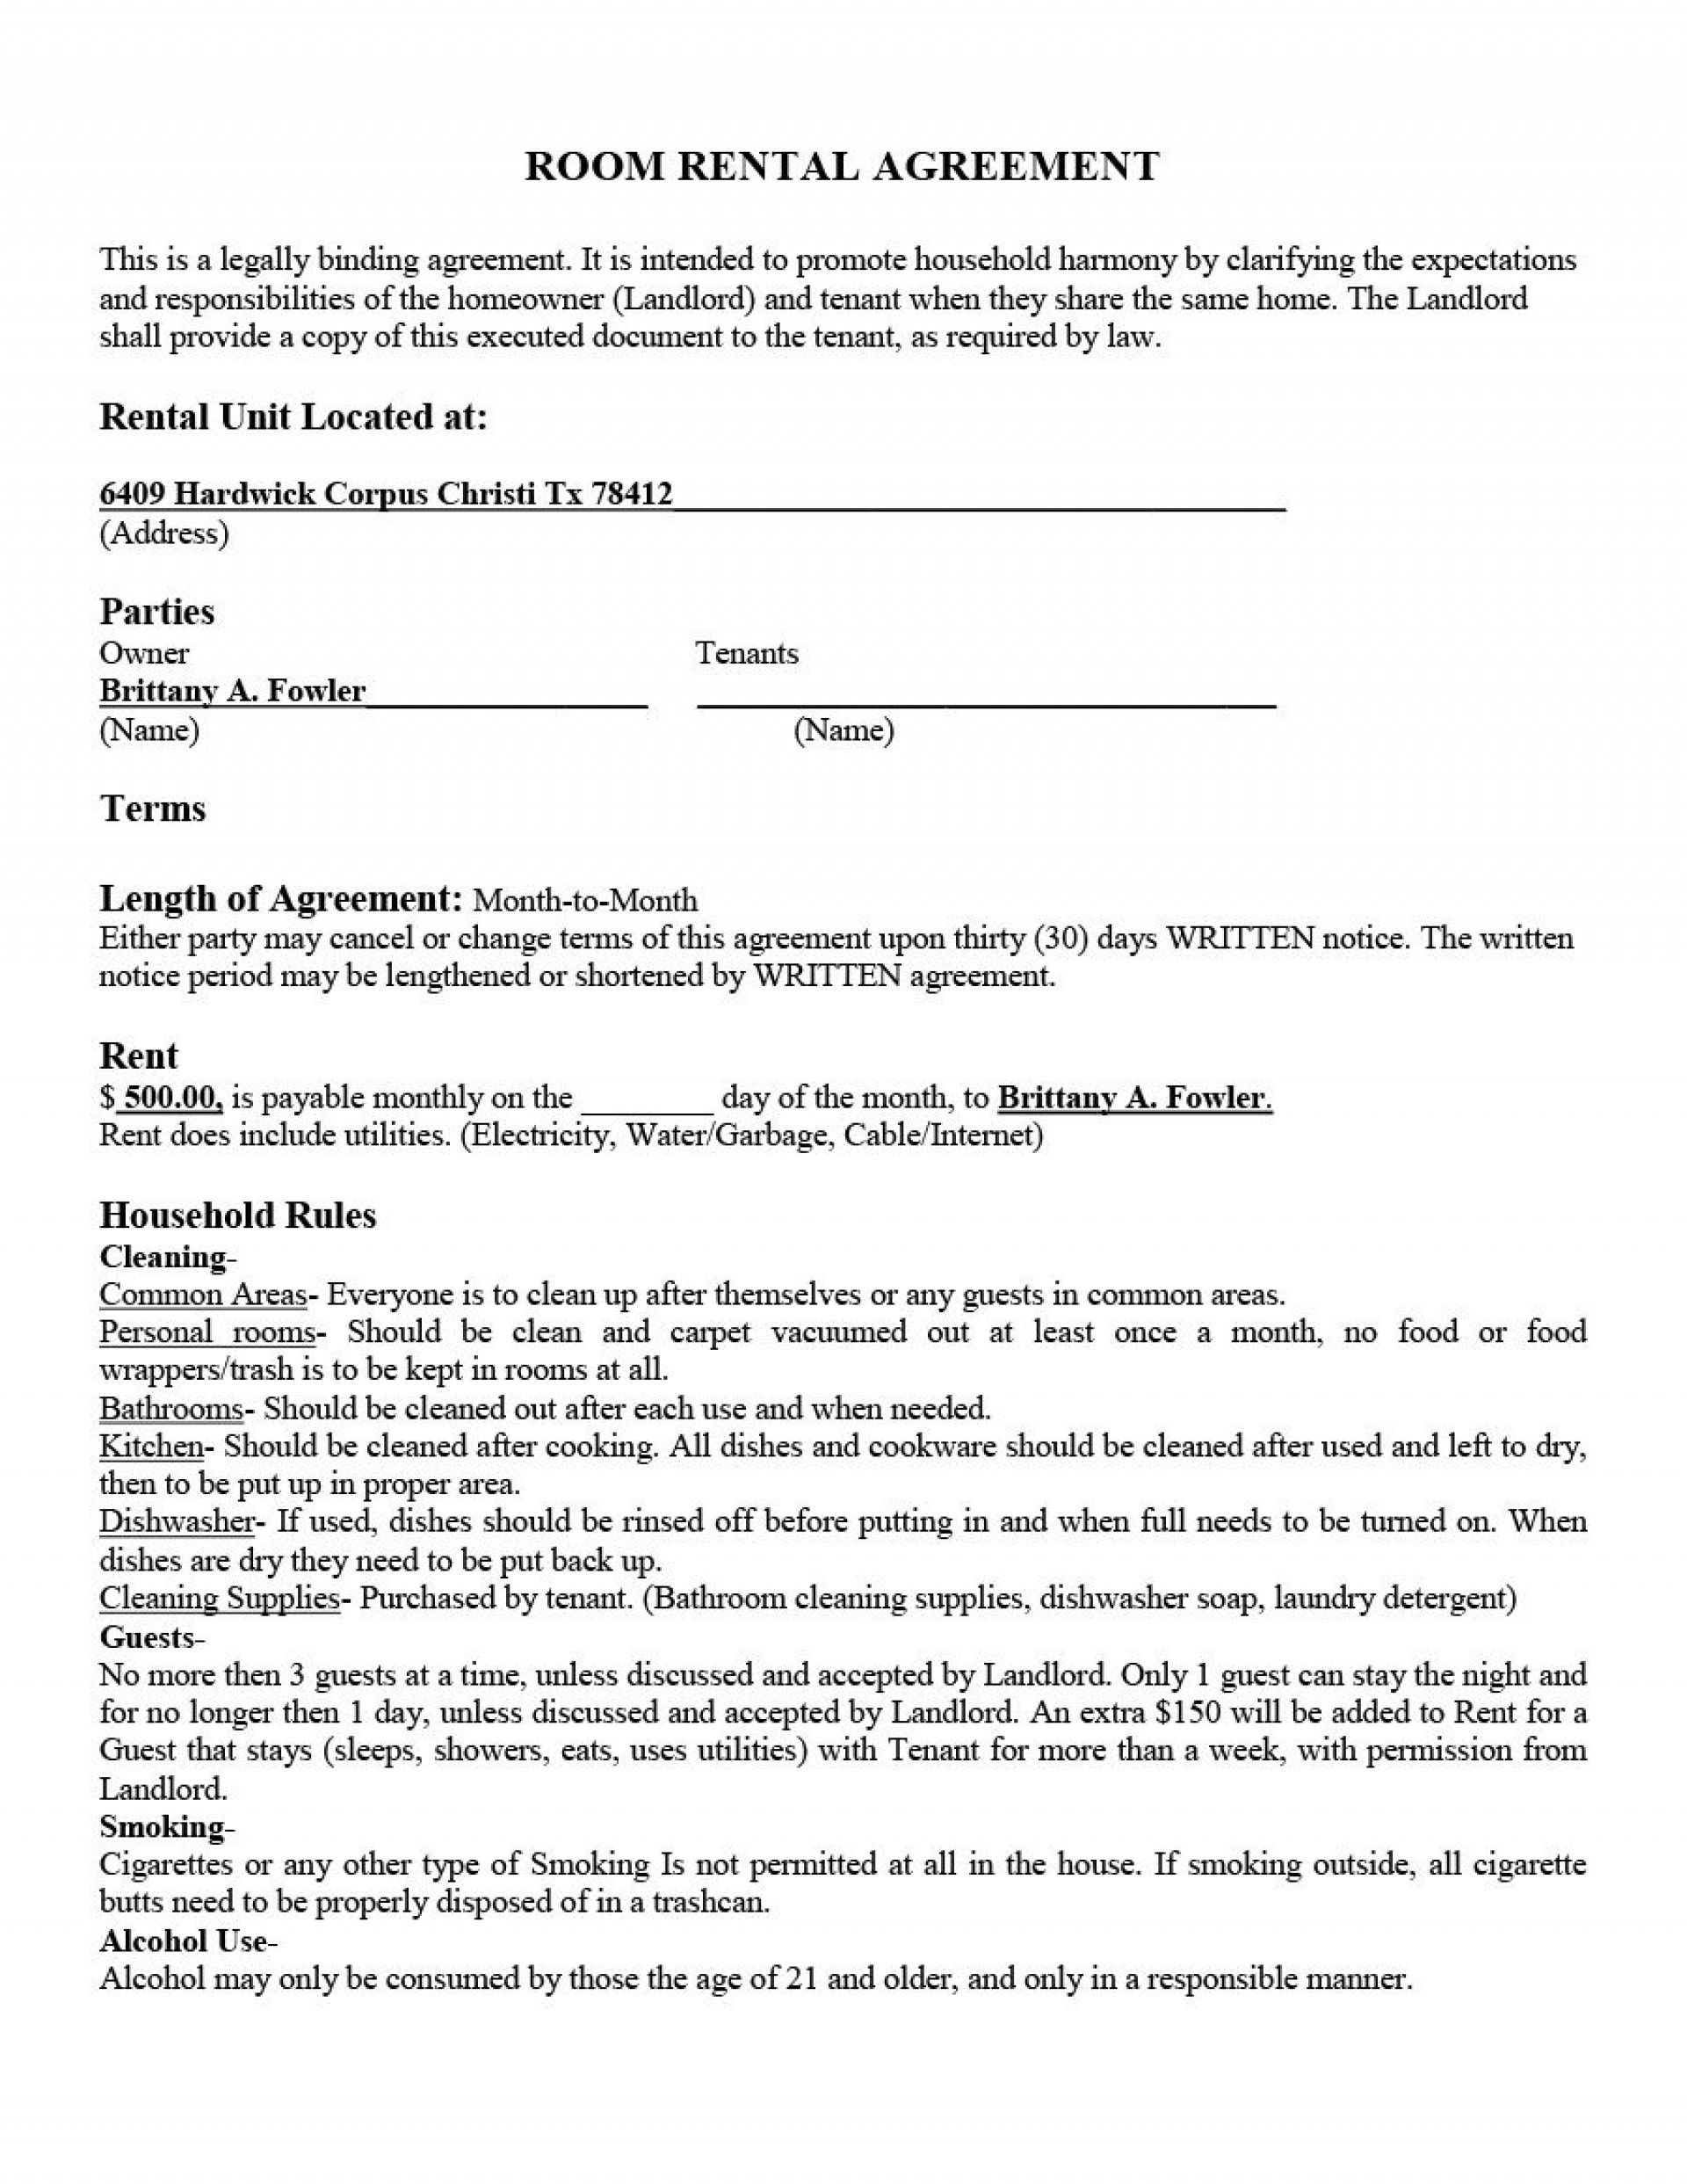 001 Awful Room Rental Agreement Template Word Doc Malaysia Concept 1920